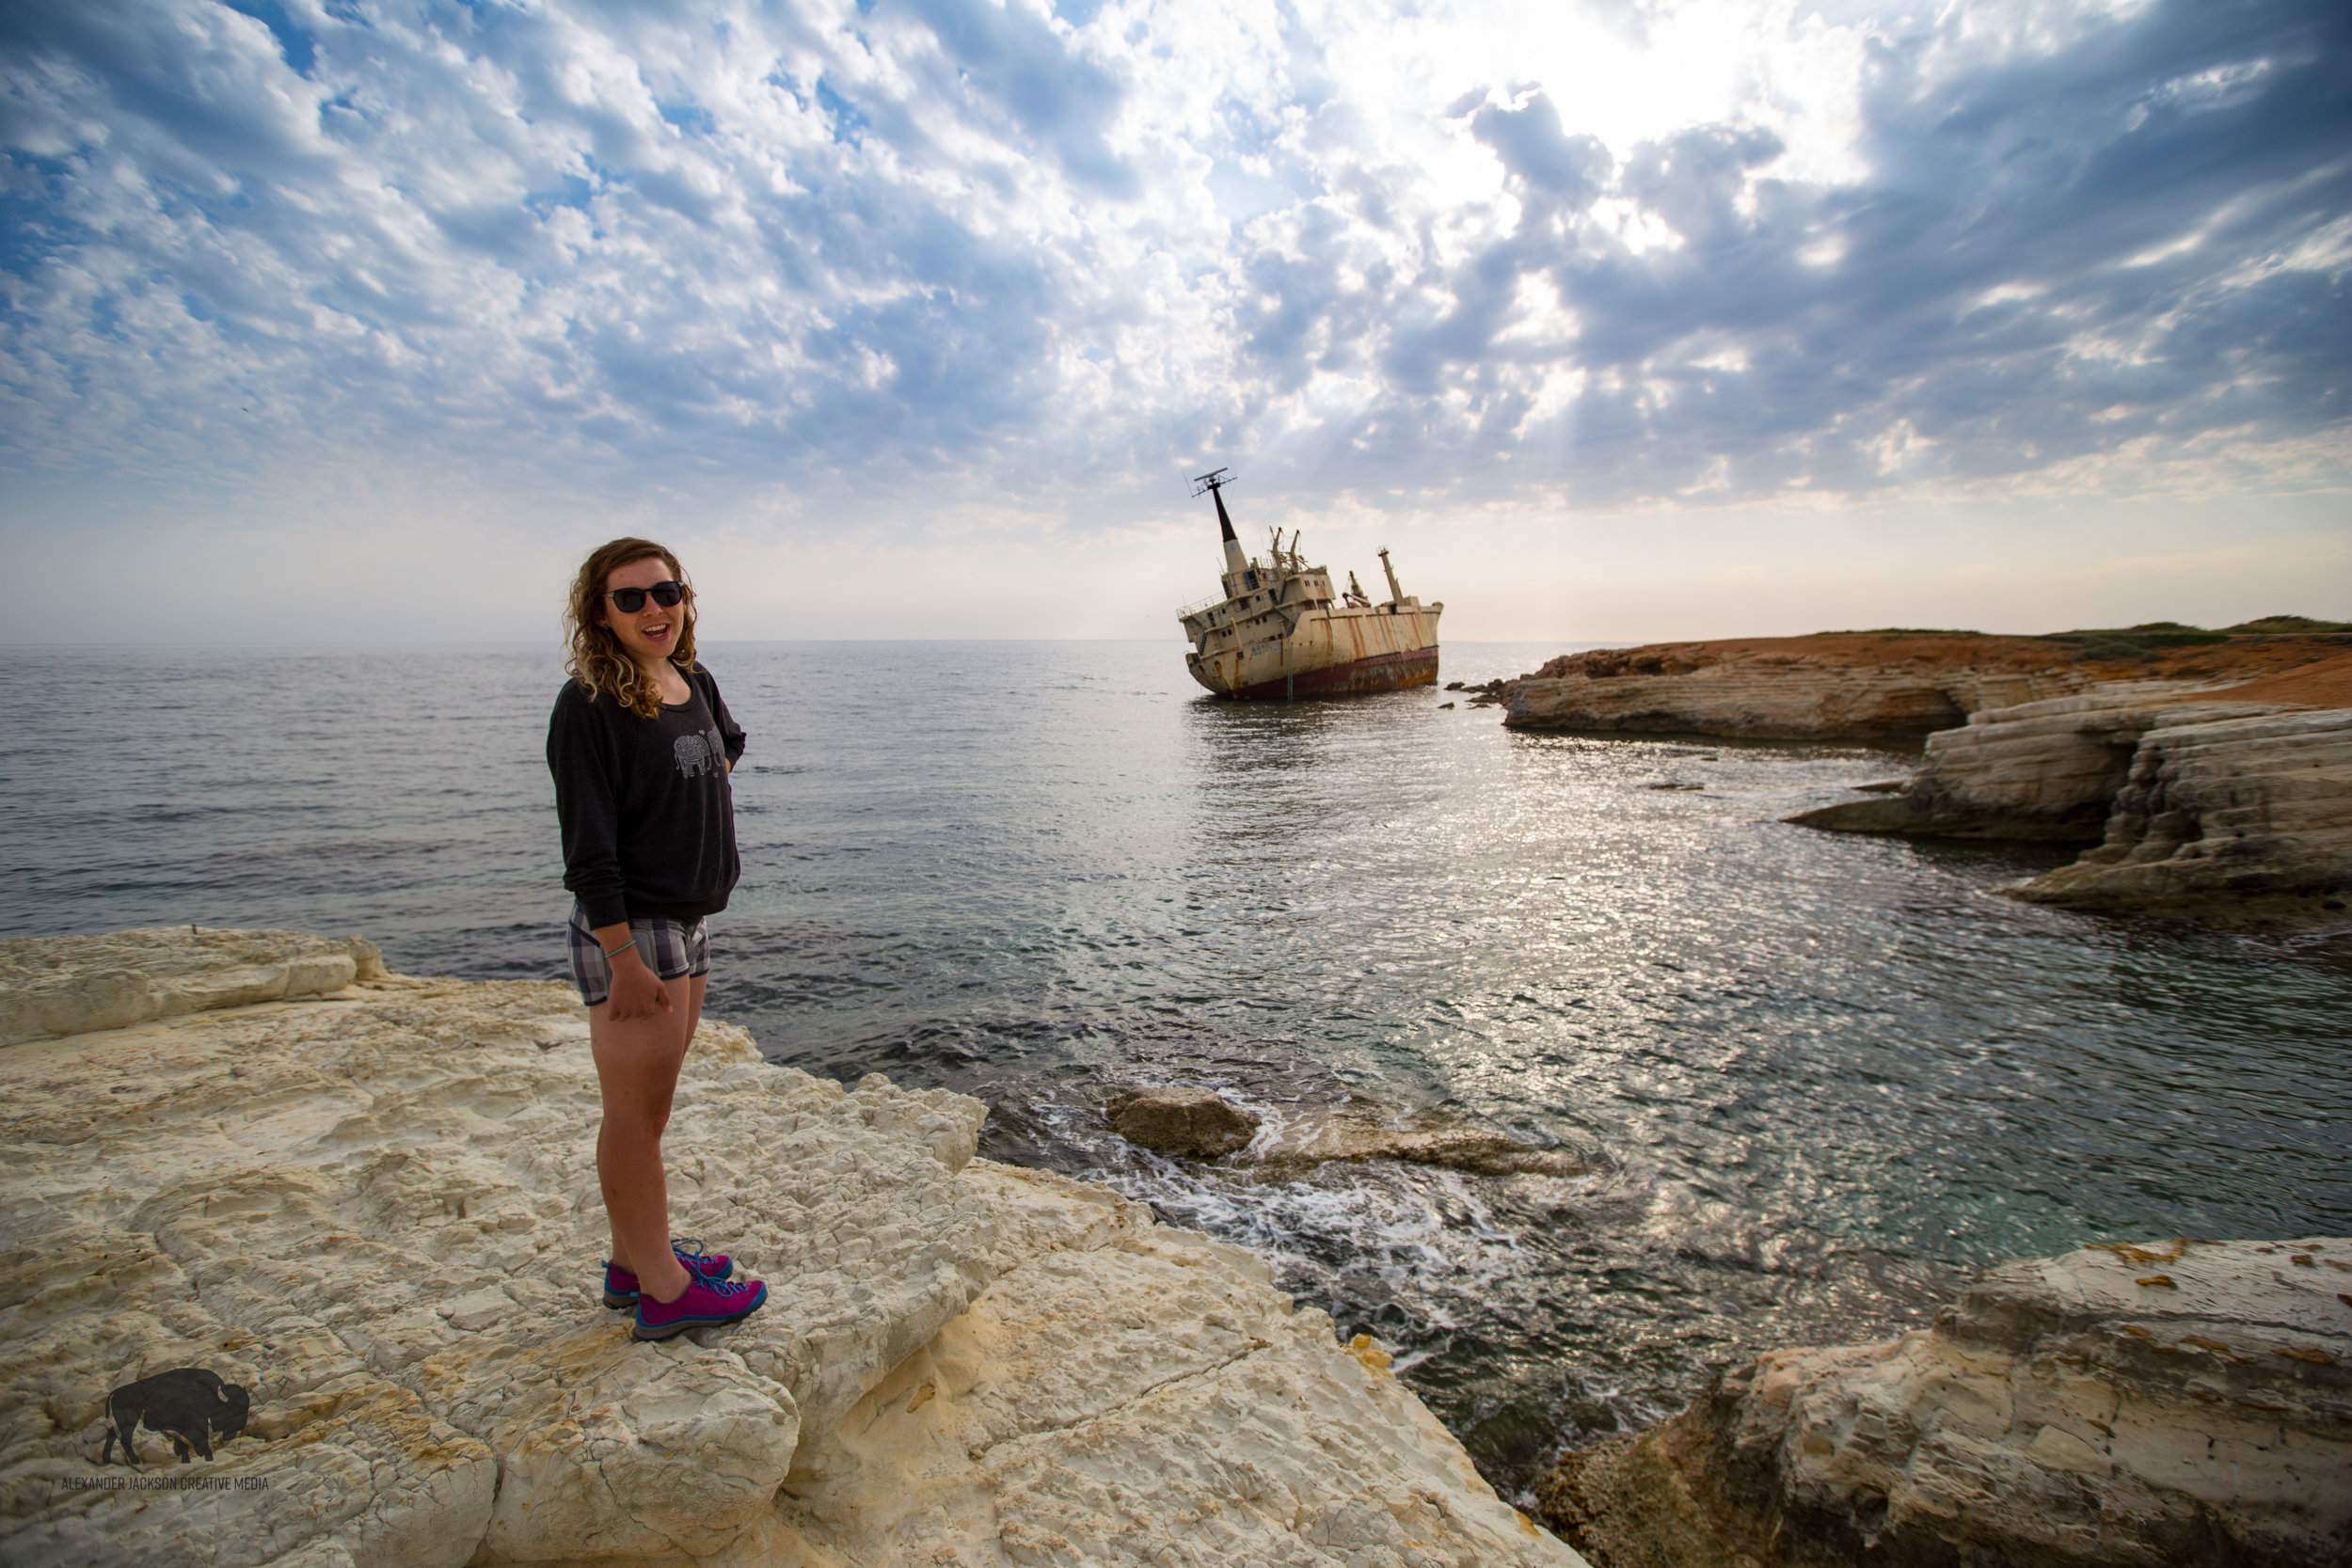 Our first sight of the Edro III shipwreck near Peyia.